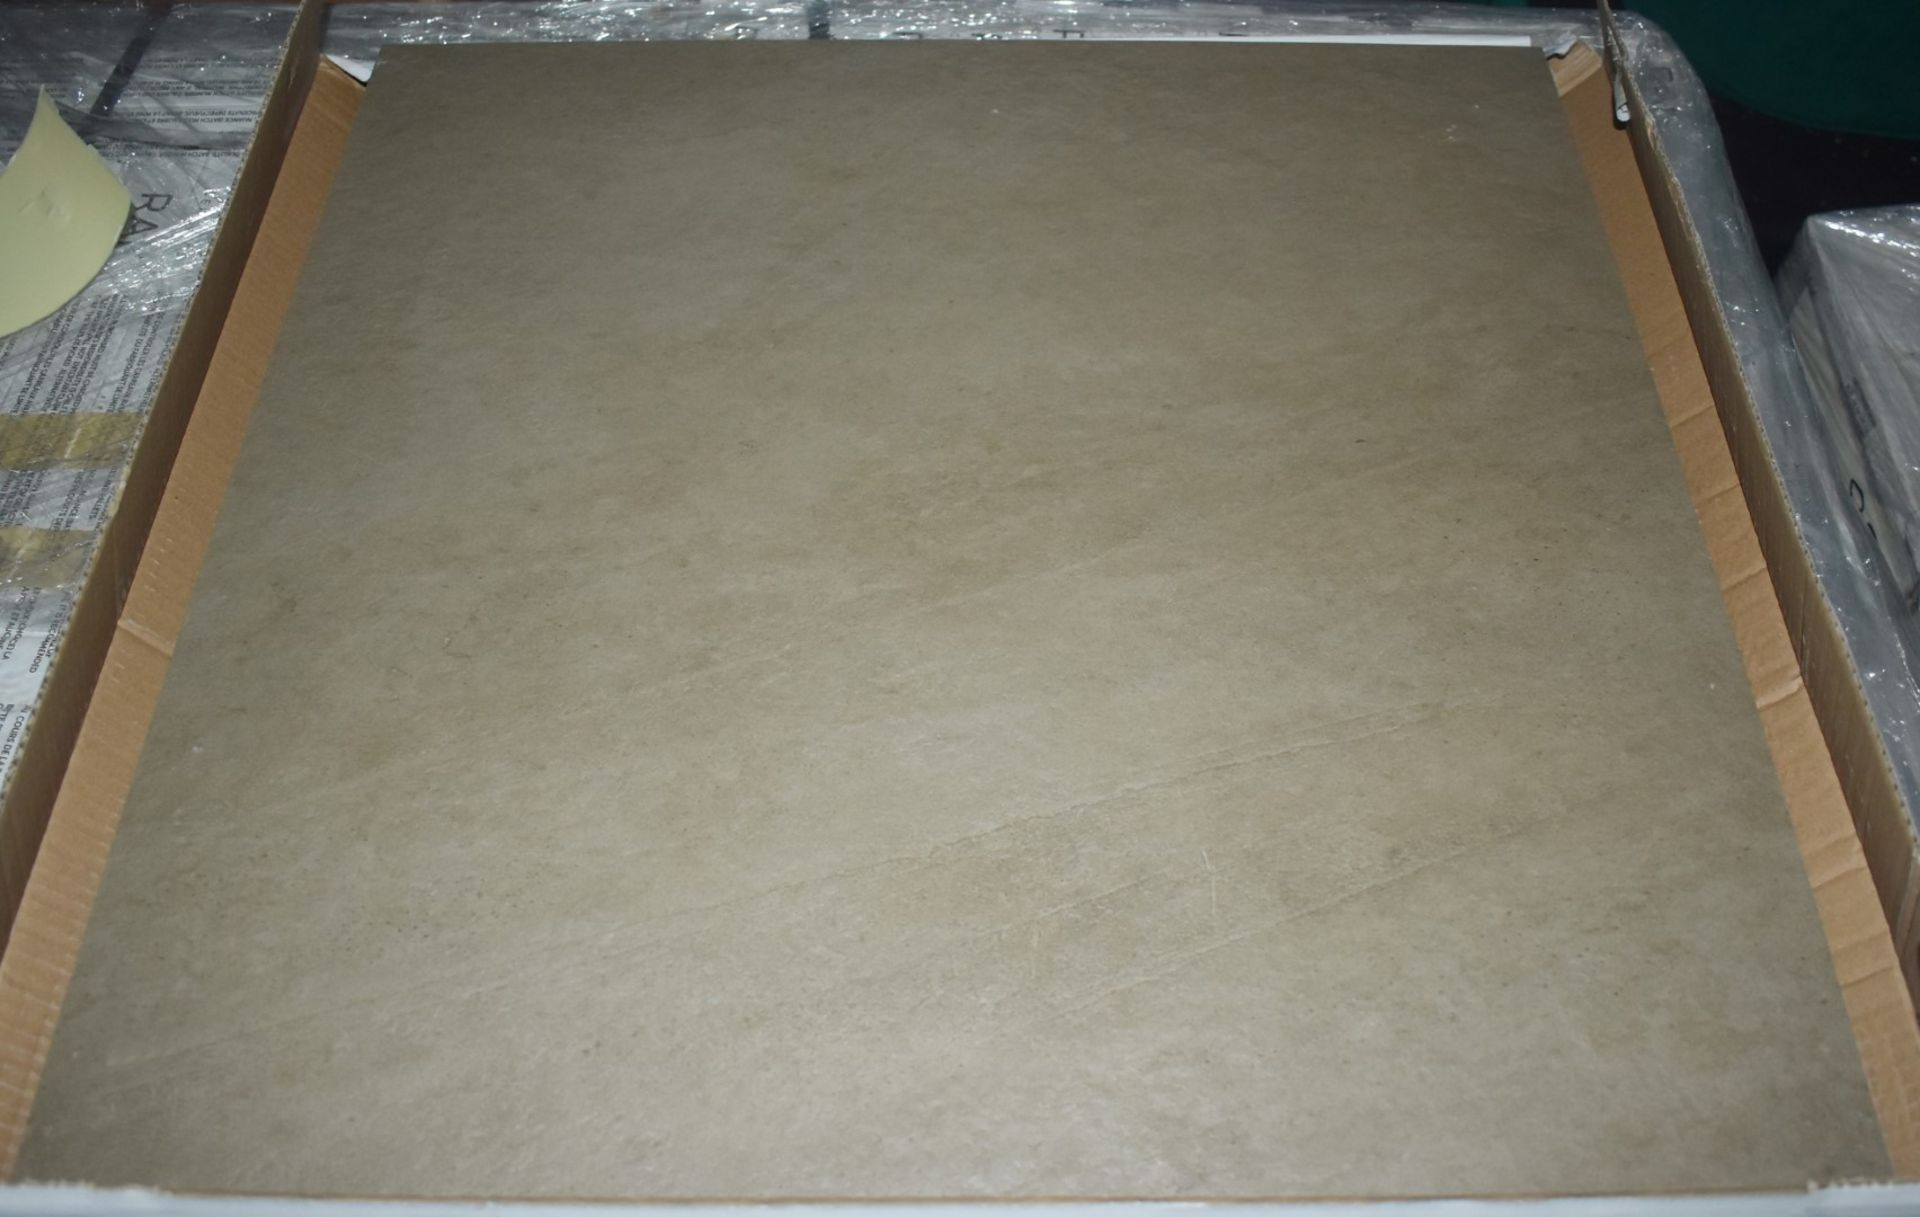 Lot 8018 - 12 x Boxes of RAK Porcelain Floor or Wall Tiles - Concrete Design in Clay Brown - 60 x 60 cm